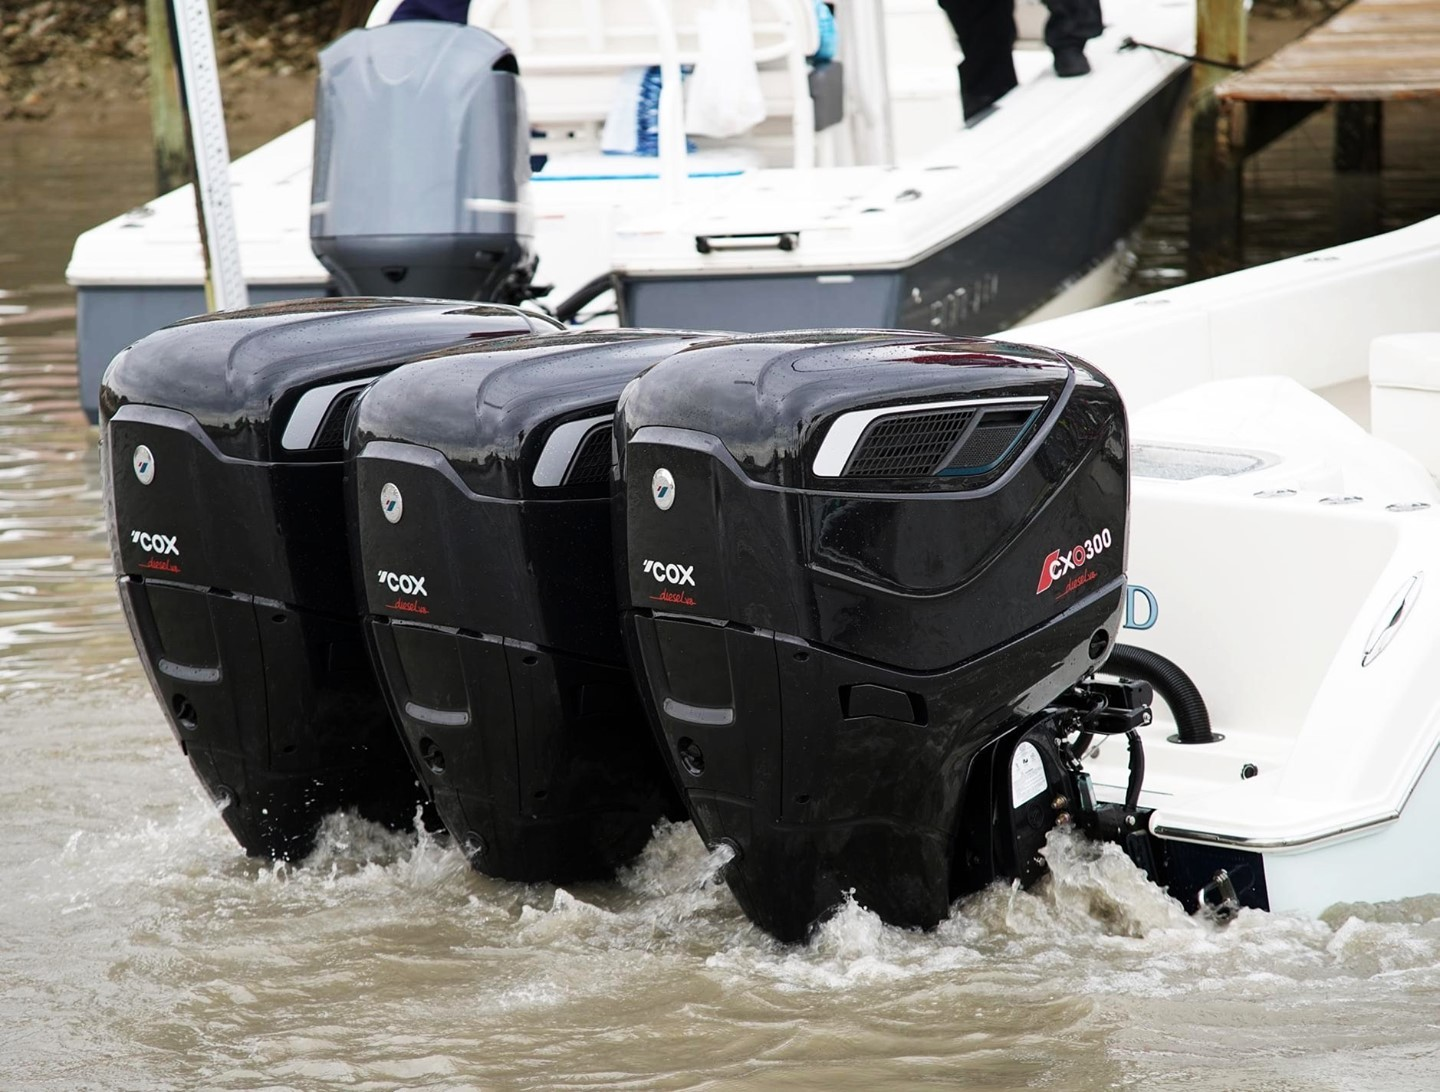 For when two just isn't enough! Just one CXO300 engine can generate 480 ft.lb torque, while using 25% less fuel than a gasoline equivalent!  For full engine specification visit the link in our bio!  #CXO300 #CoxPowertrain #Cox #Engine #Outboards #OutboardCost #DieselOutboard